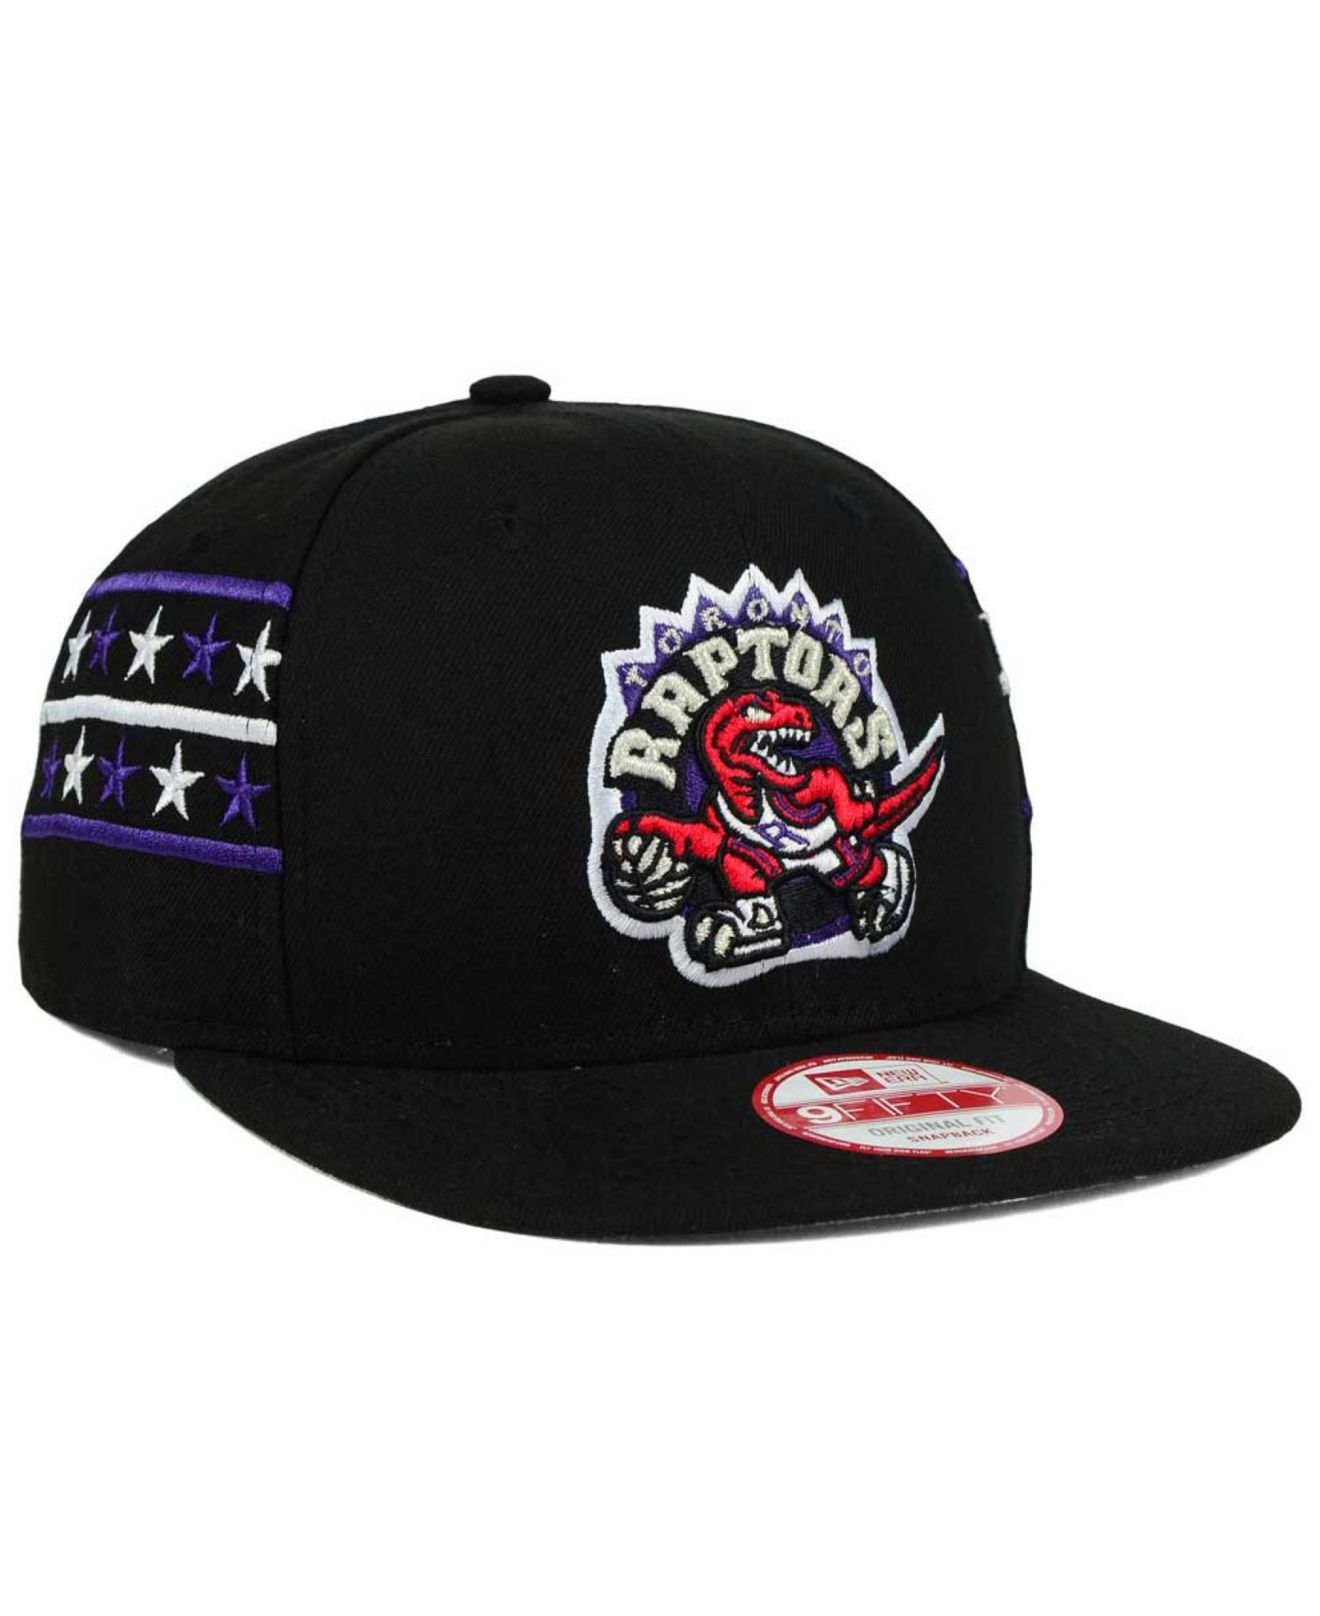 Lyst - Ktz Toronto Raptors Fine Side 9fifty Snapback Cap in Black ... 9d3a52b13a89